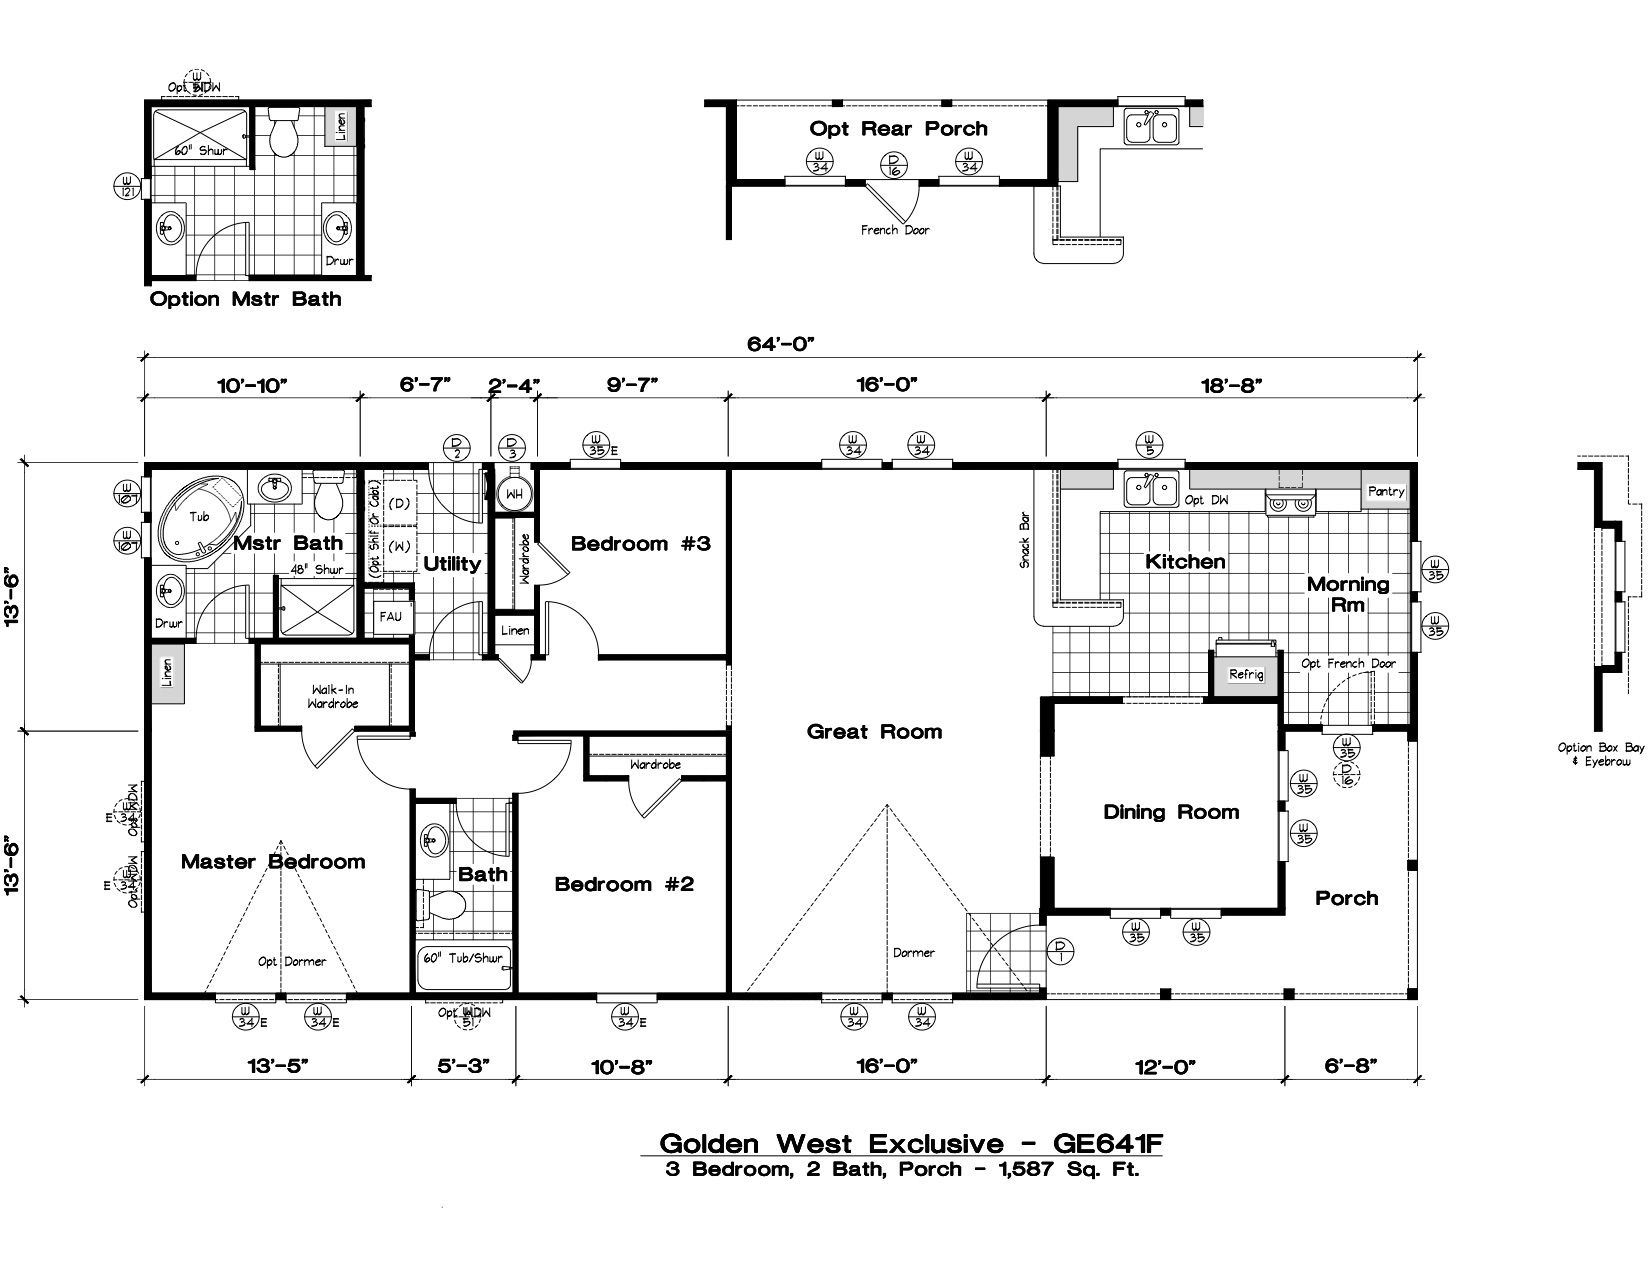 Homes Direct Modular Homes - Model GE641F - Floorplan